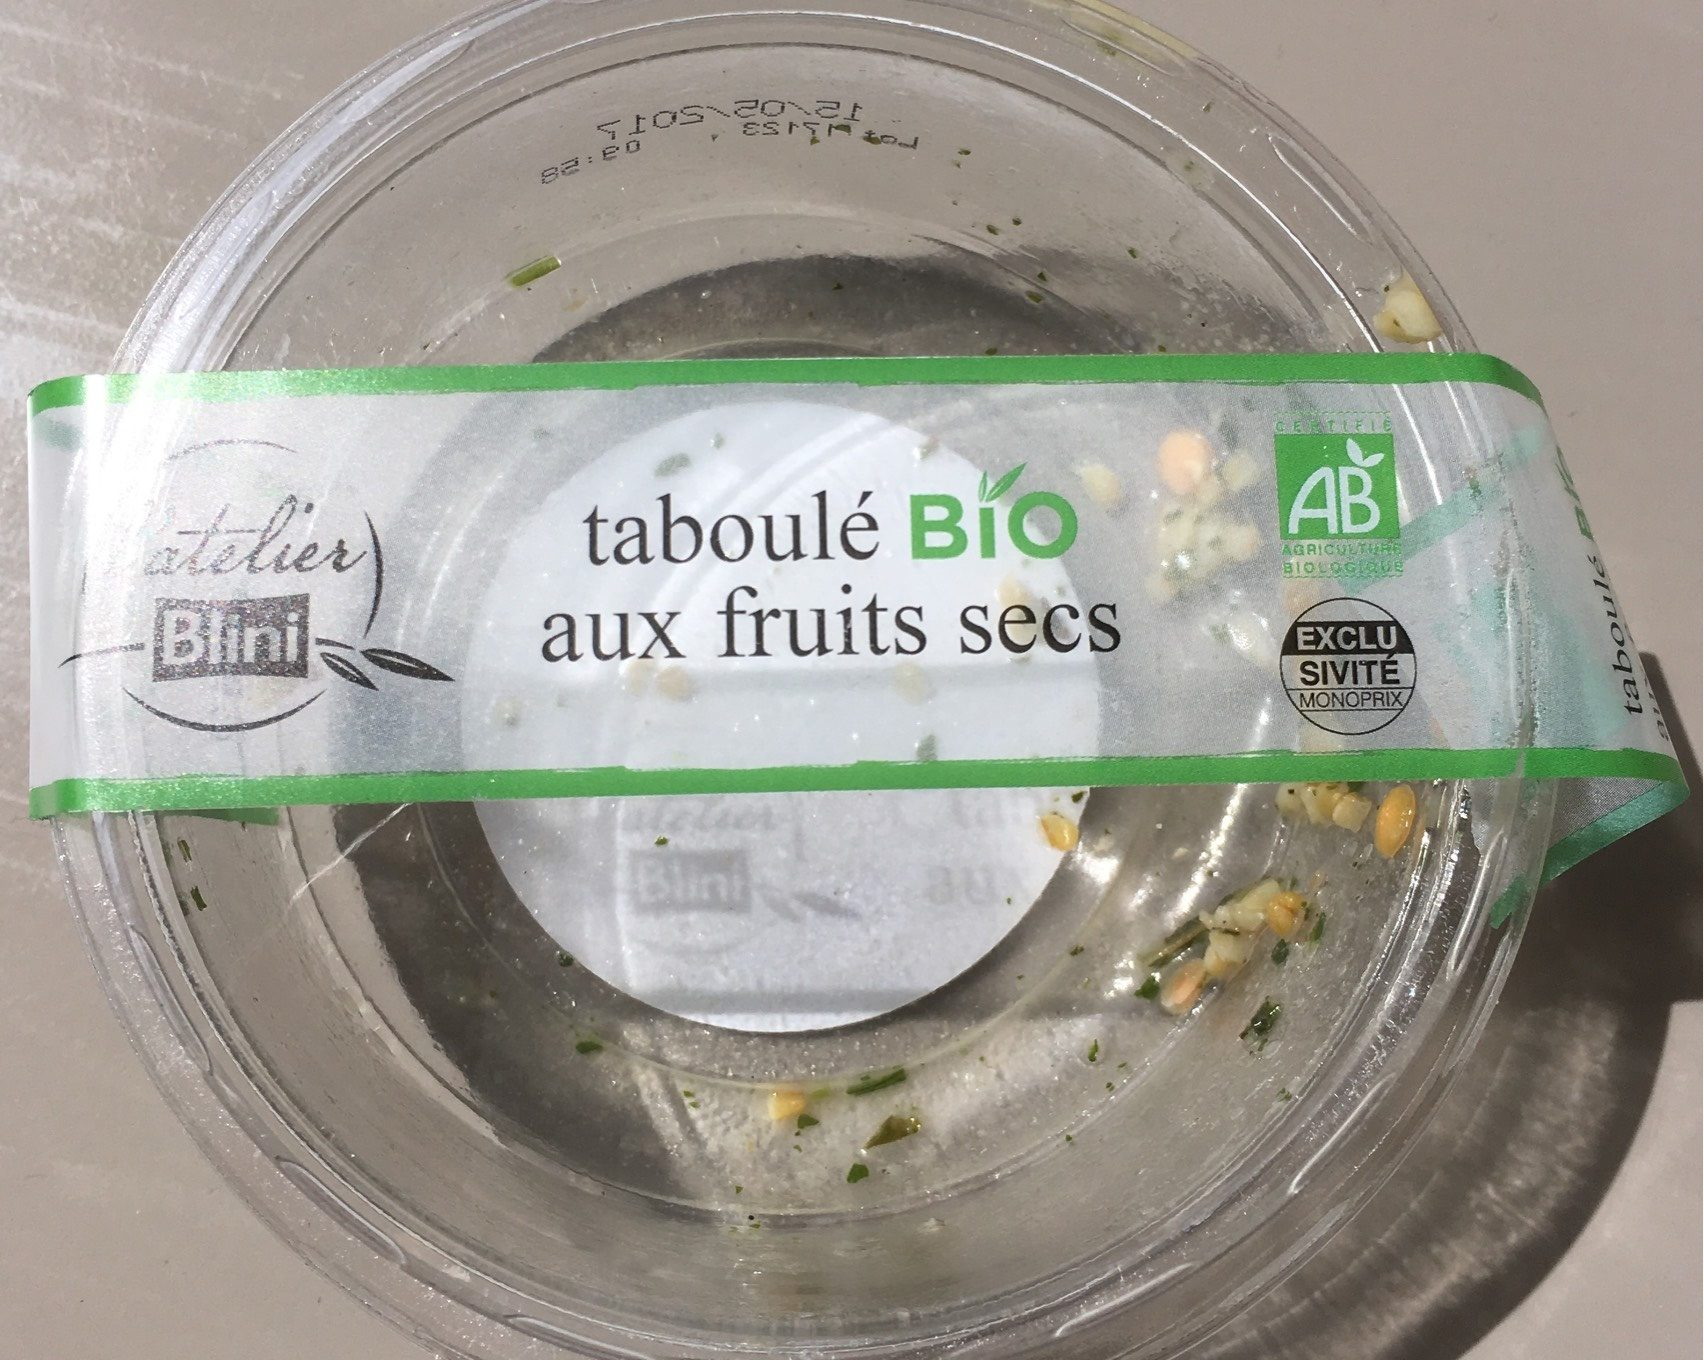 Taboulé bio aux fruits secs - Product